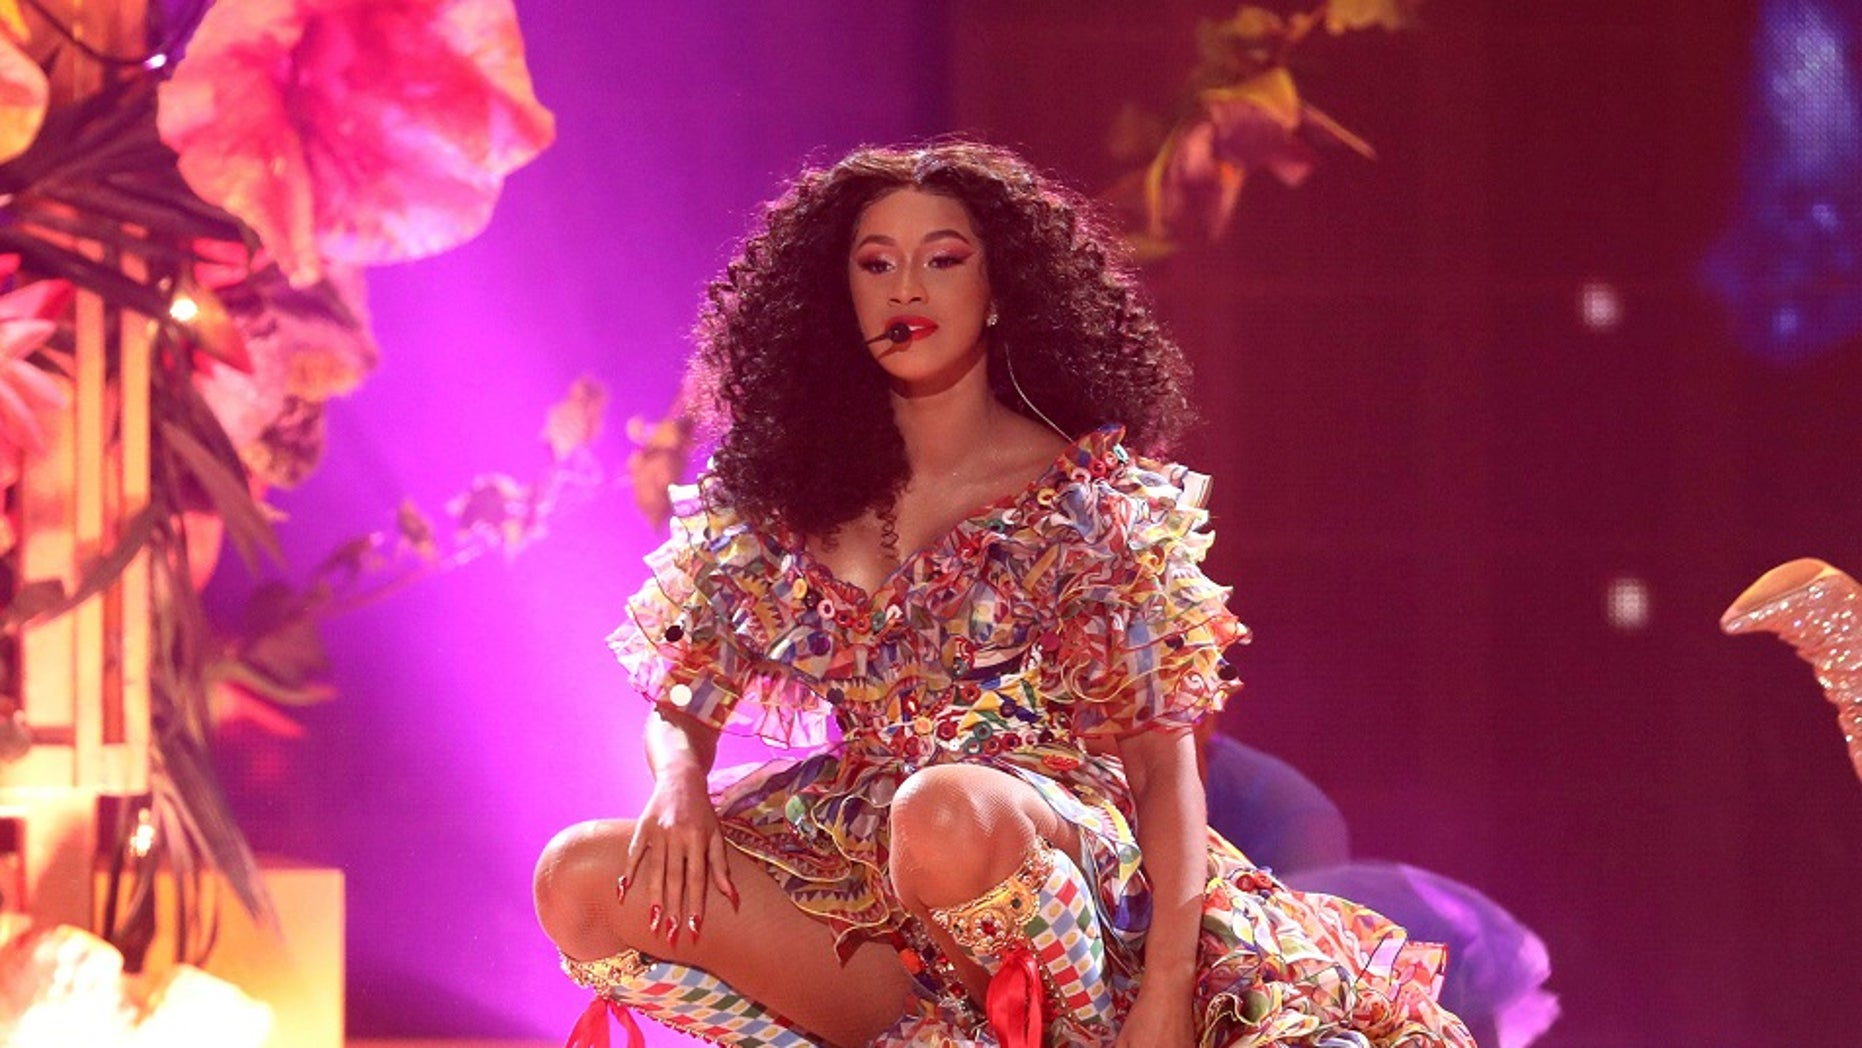 """Cardi B performs """"I Like It"""" at the American Music Awards at the Microsoft Theater in Los Angeles, Oct. 9, 2018. (Associated Press)"""